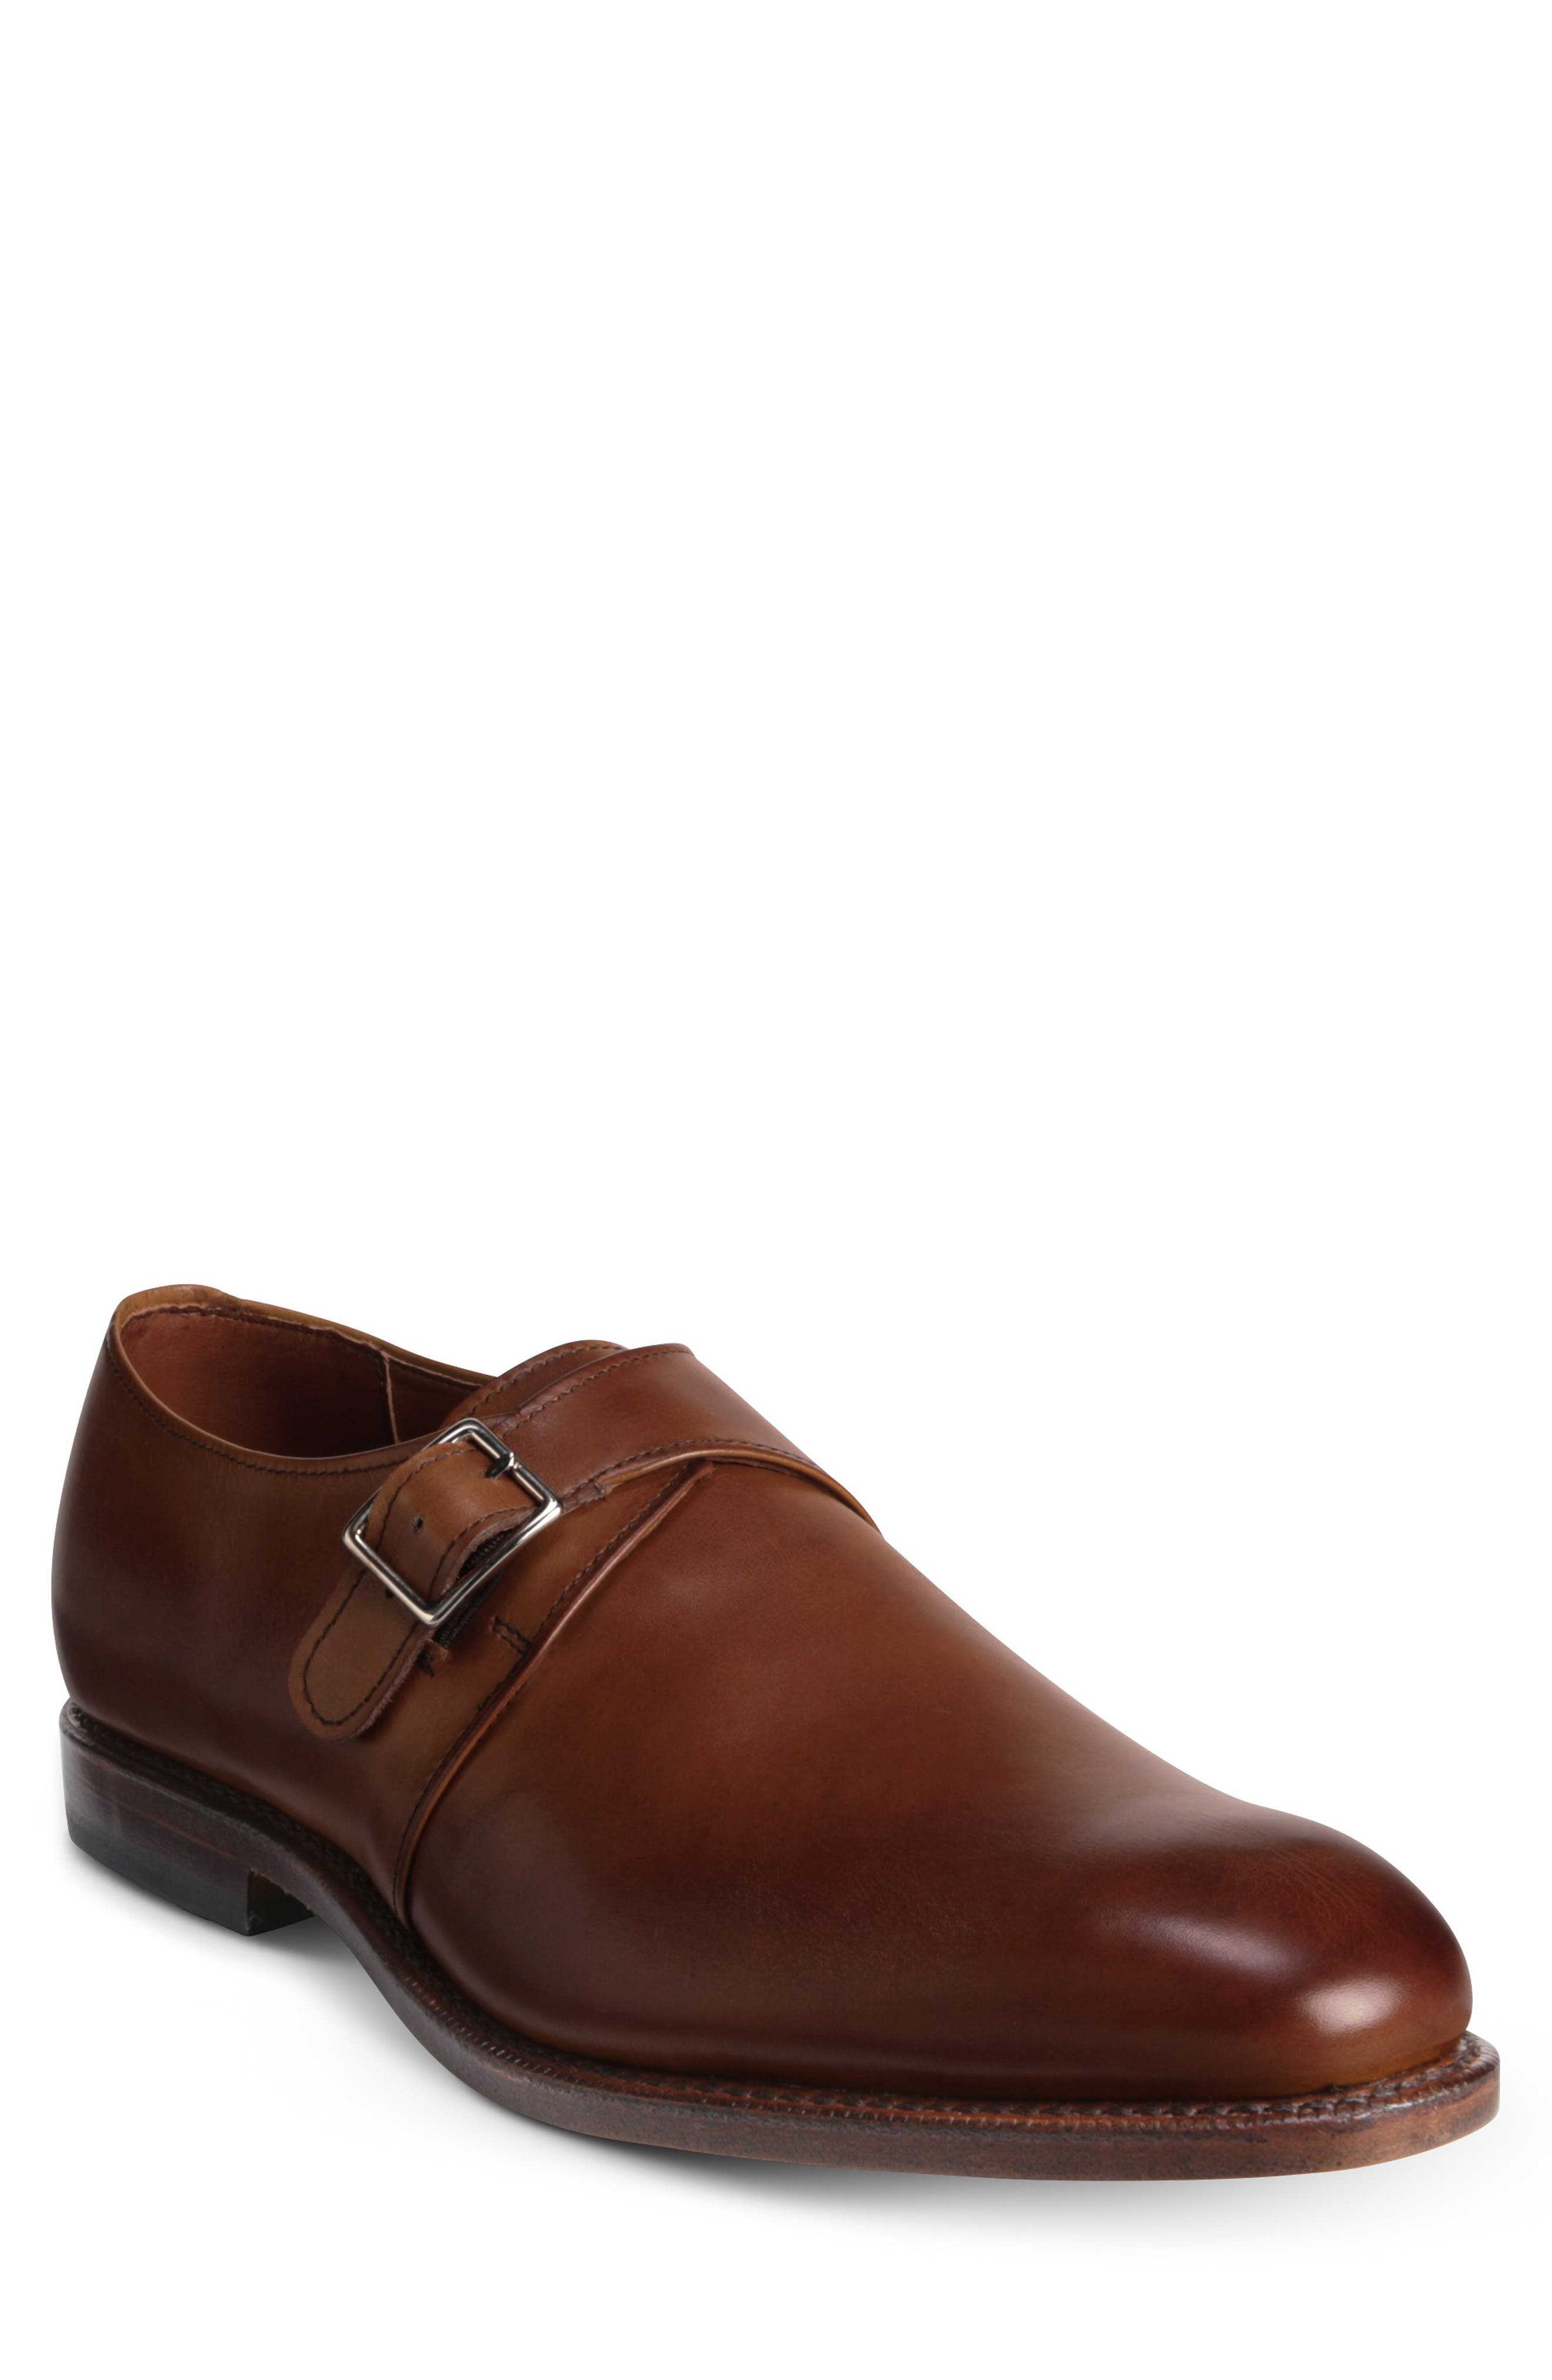 A single monk strap adds to the clean silhouette of this classy shoe that\\\'s handcrafted in Port Washington, Wisconsin, into a durable, stable design. Style Name: Allen Edmonds Plymouth Monk Shoe (Men). Style Number: 6143267. Available in stores.